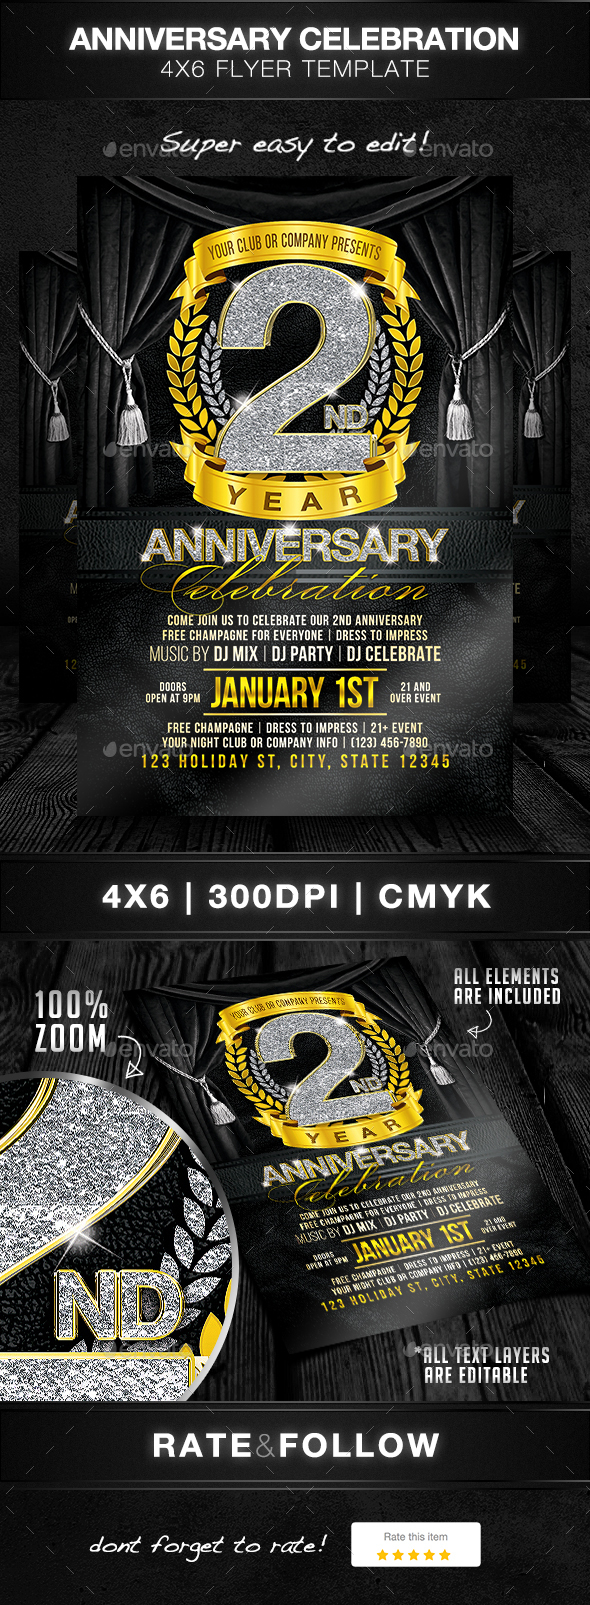 Anniversary Celebration Flyer Template - Clubs & Parties Events